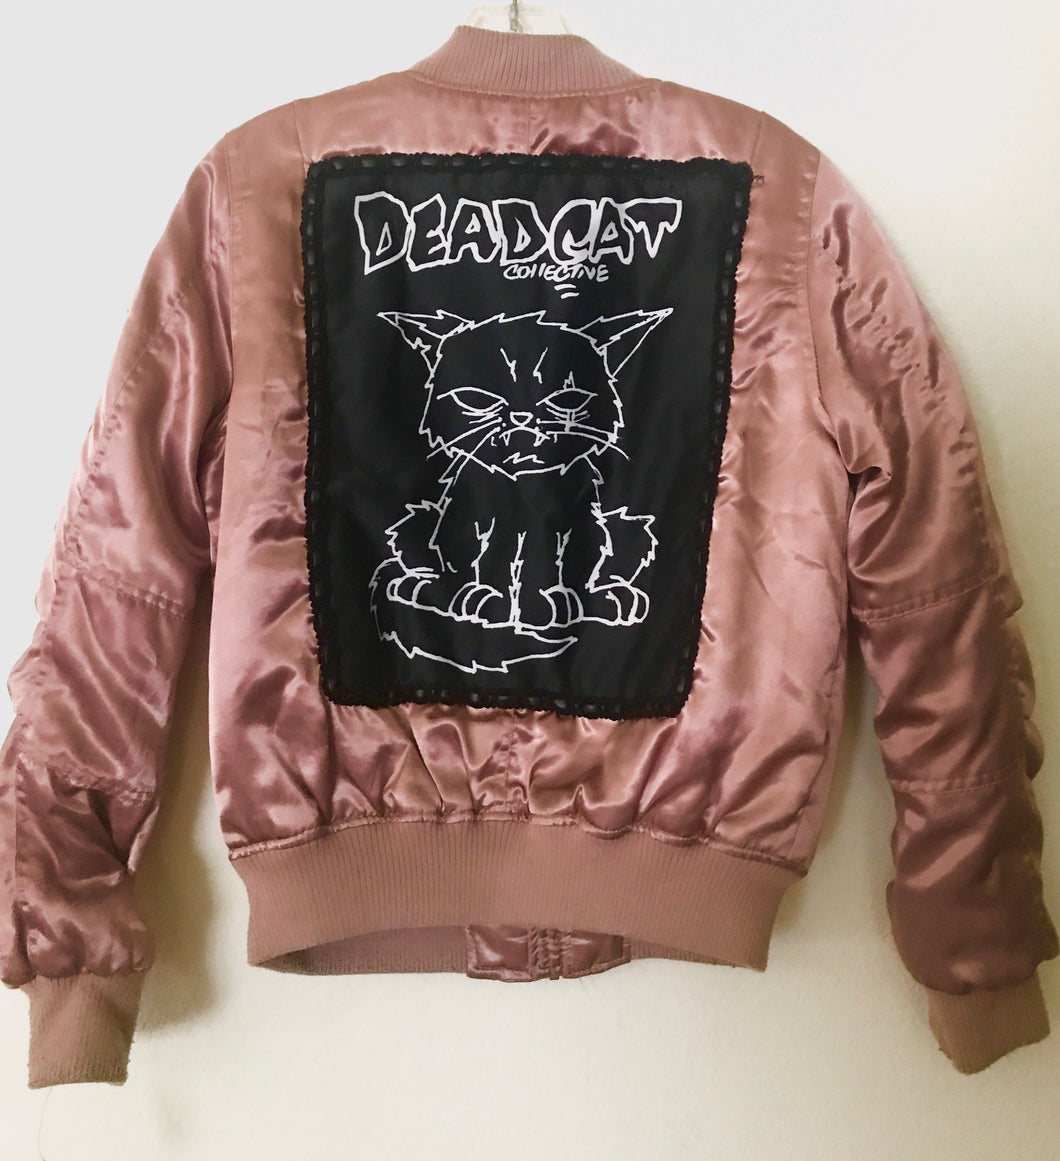 Grumpy Deadcat Jacket